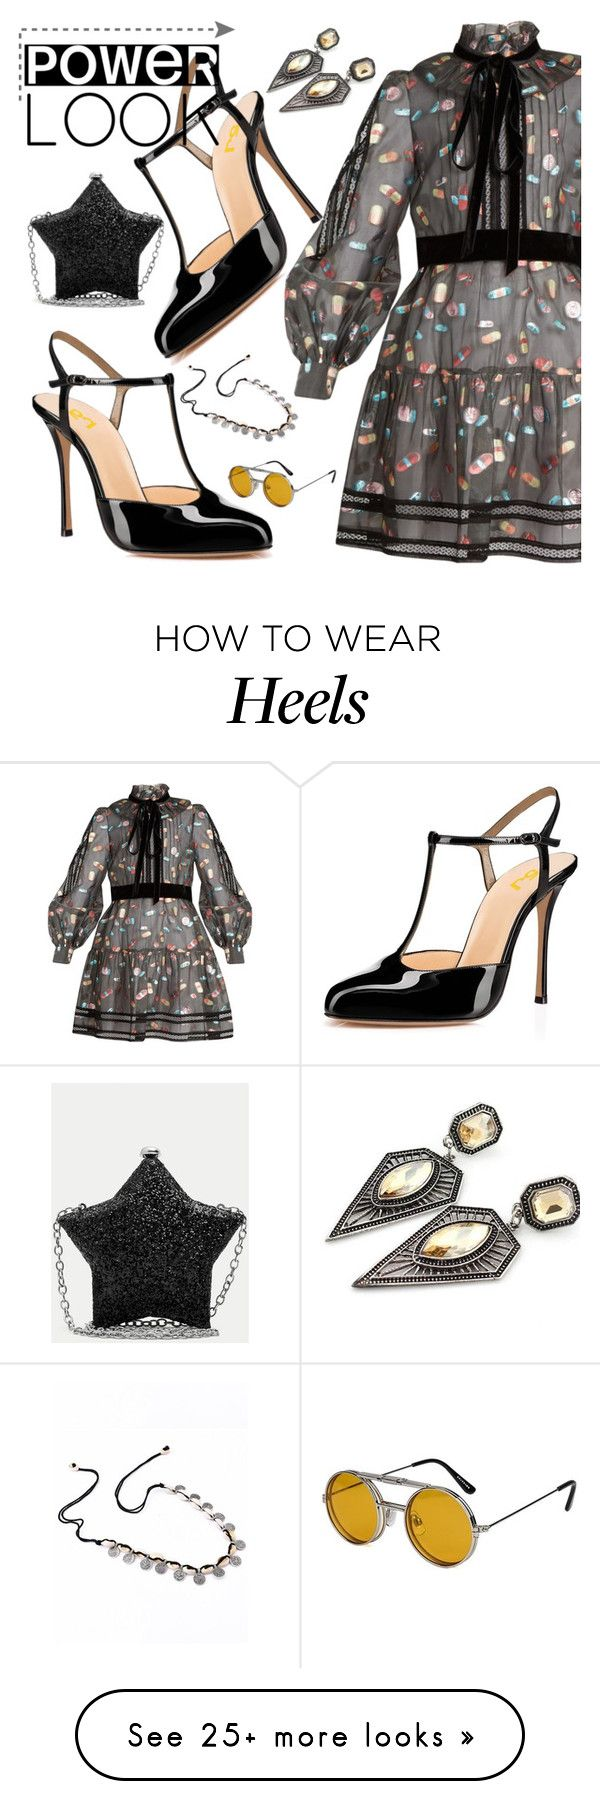 """Power Look#"" by fsjamazon on Polyvore featuring Marc Jacobs, Spitfire, girlpower and powerlook"